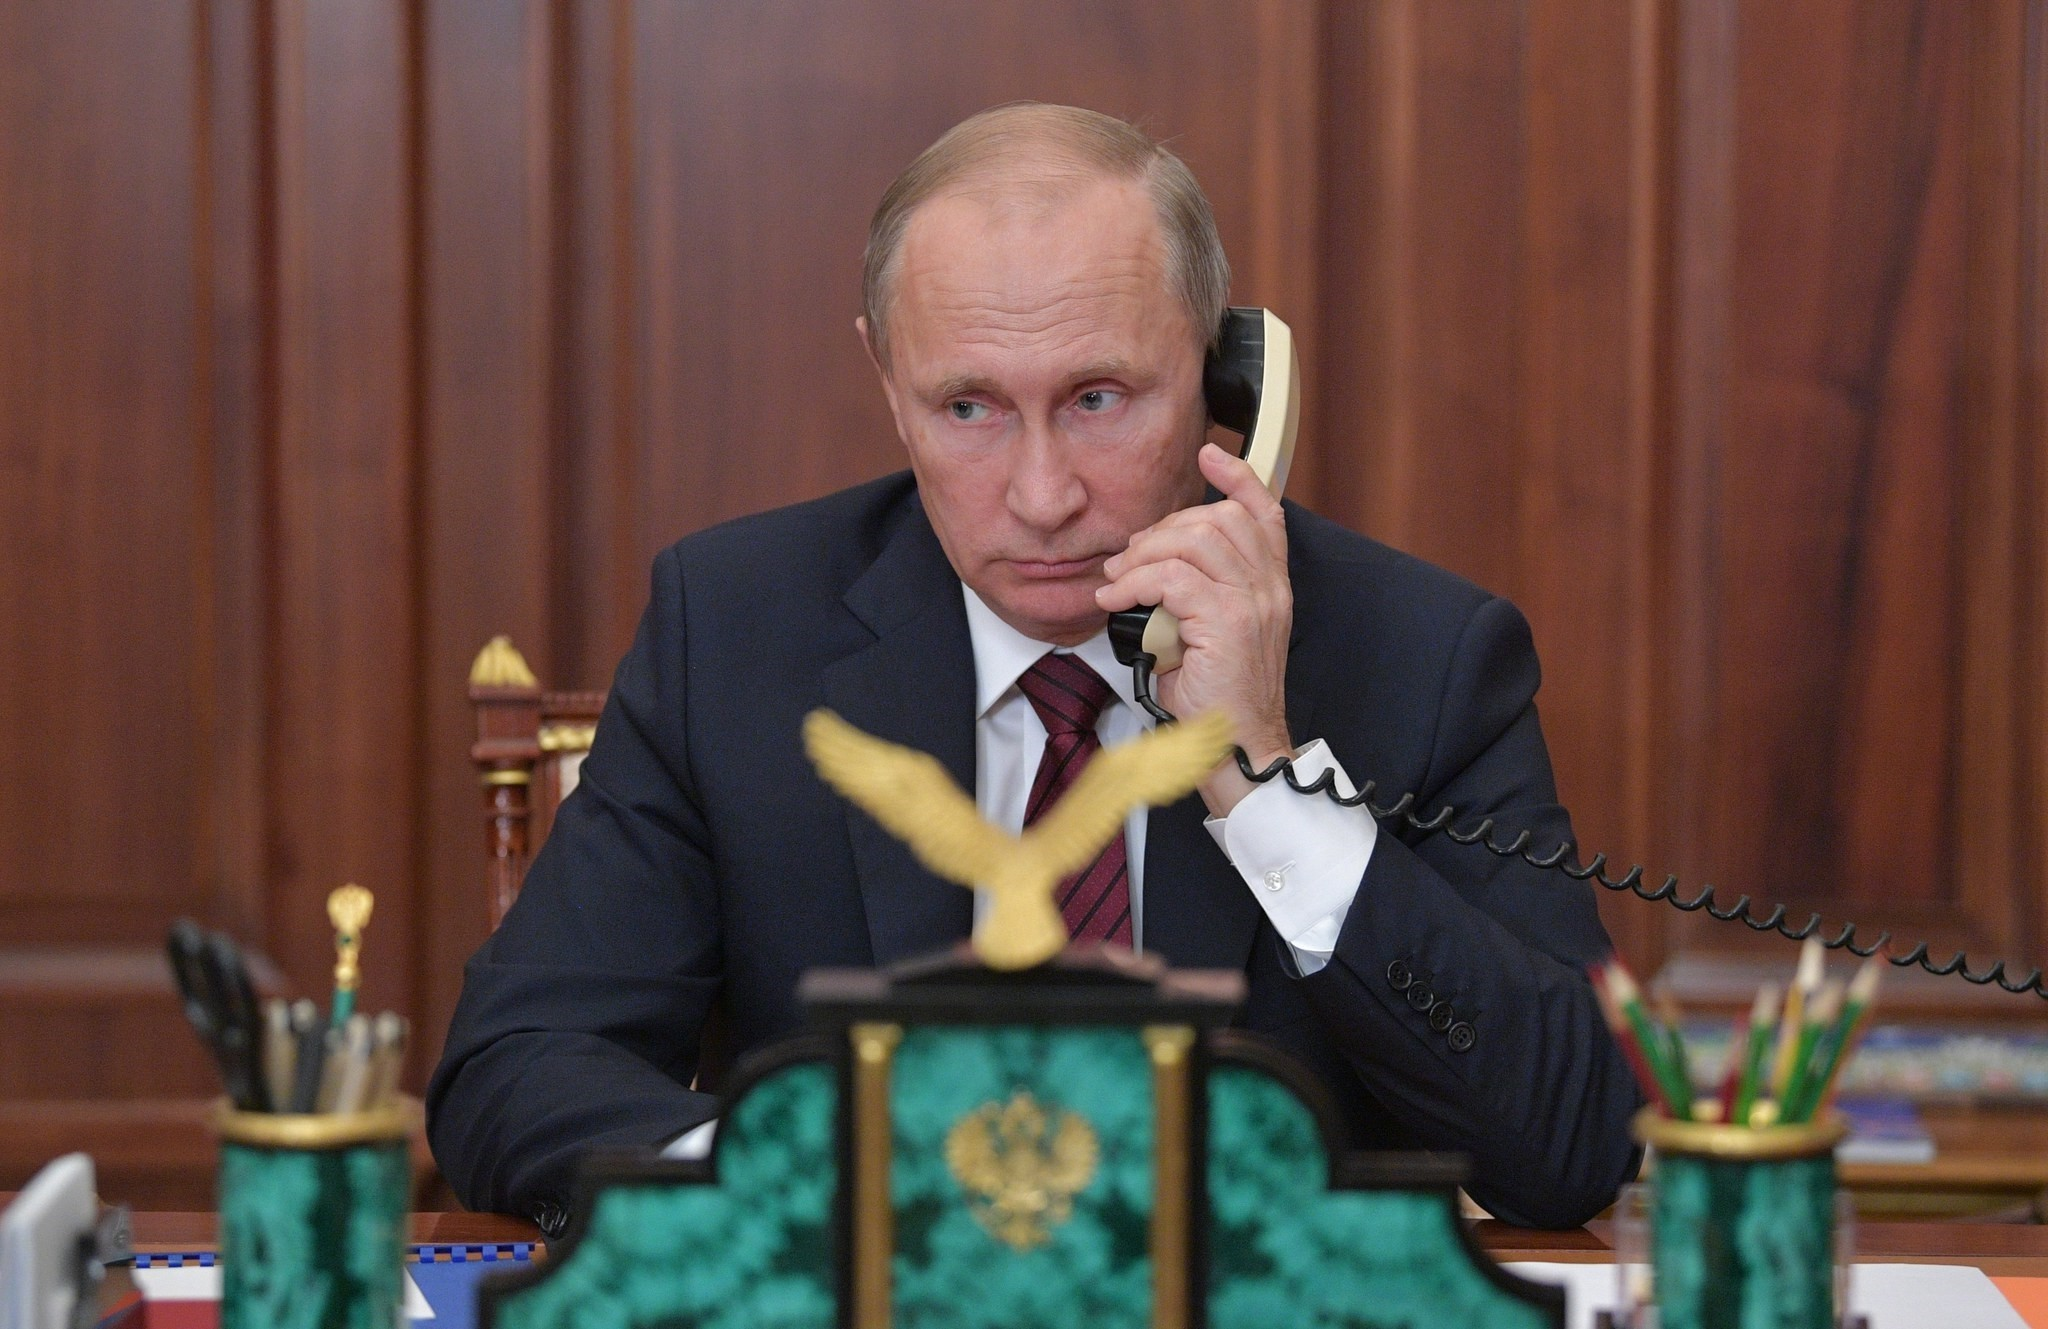 Putin holds a telephone conversation with leaders of the self-proclaimed republics, Donetsk People's Republic and Luhansk People's Republic, in the Kremlin in Moscow, Russia, 15 November 2017. (EPA Photo)